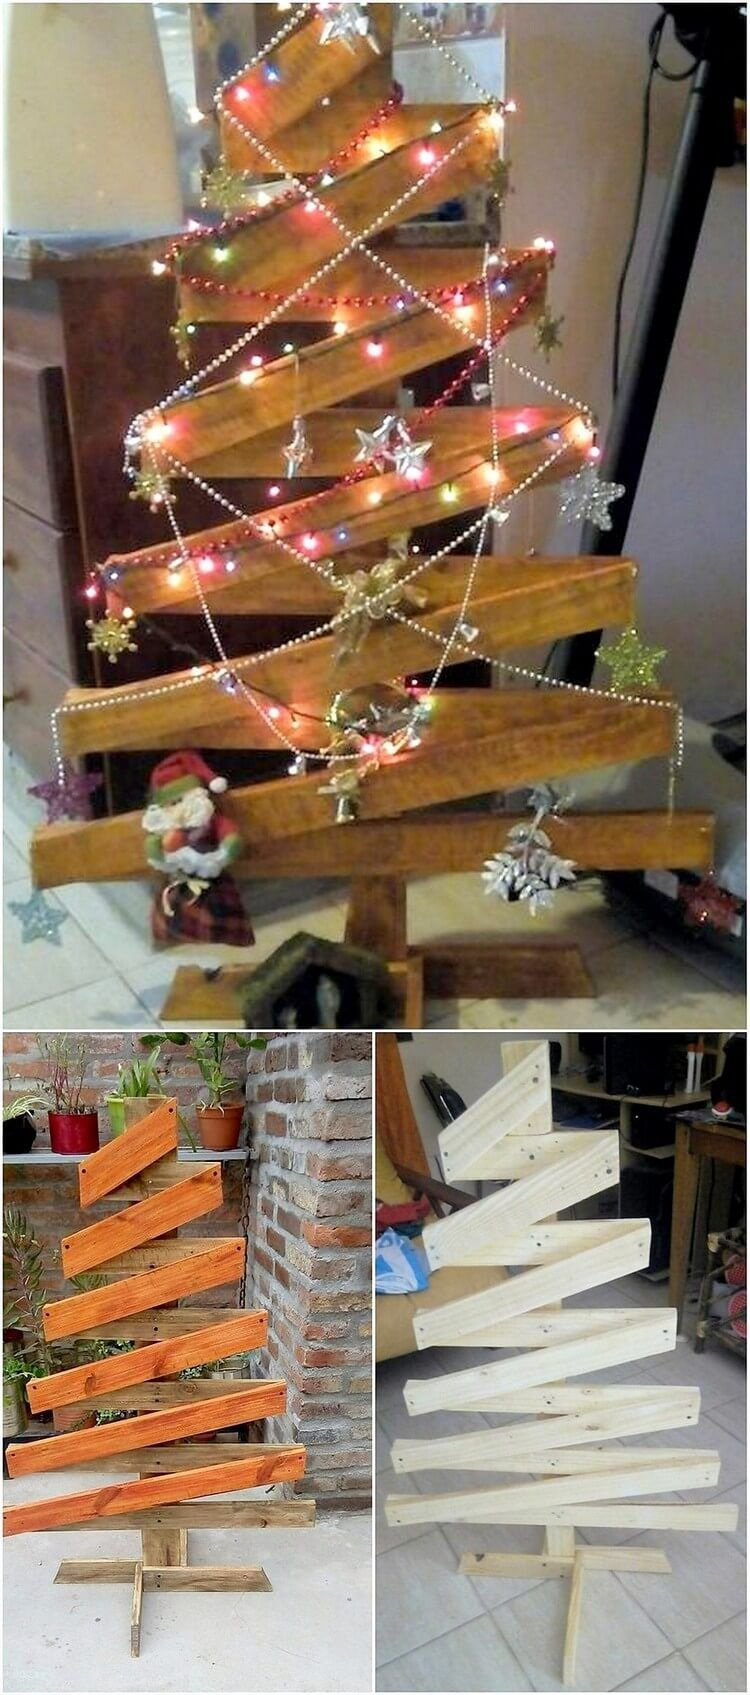 wood pallet christmas tree is greater in demand in many of the houses especially among those who do not prefer using the unreal christmas tree decorations